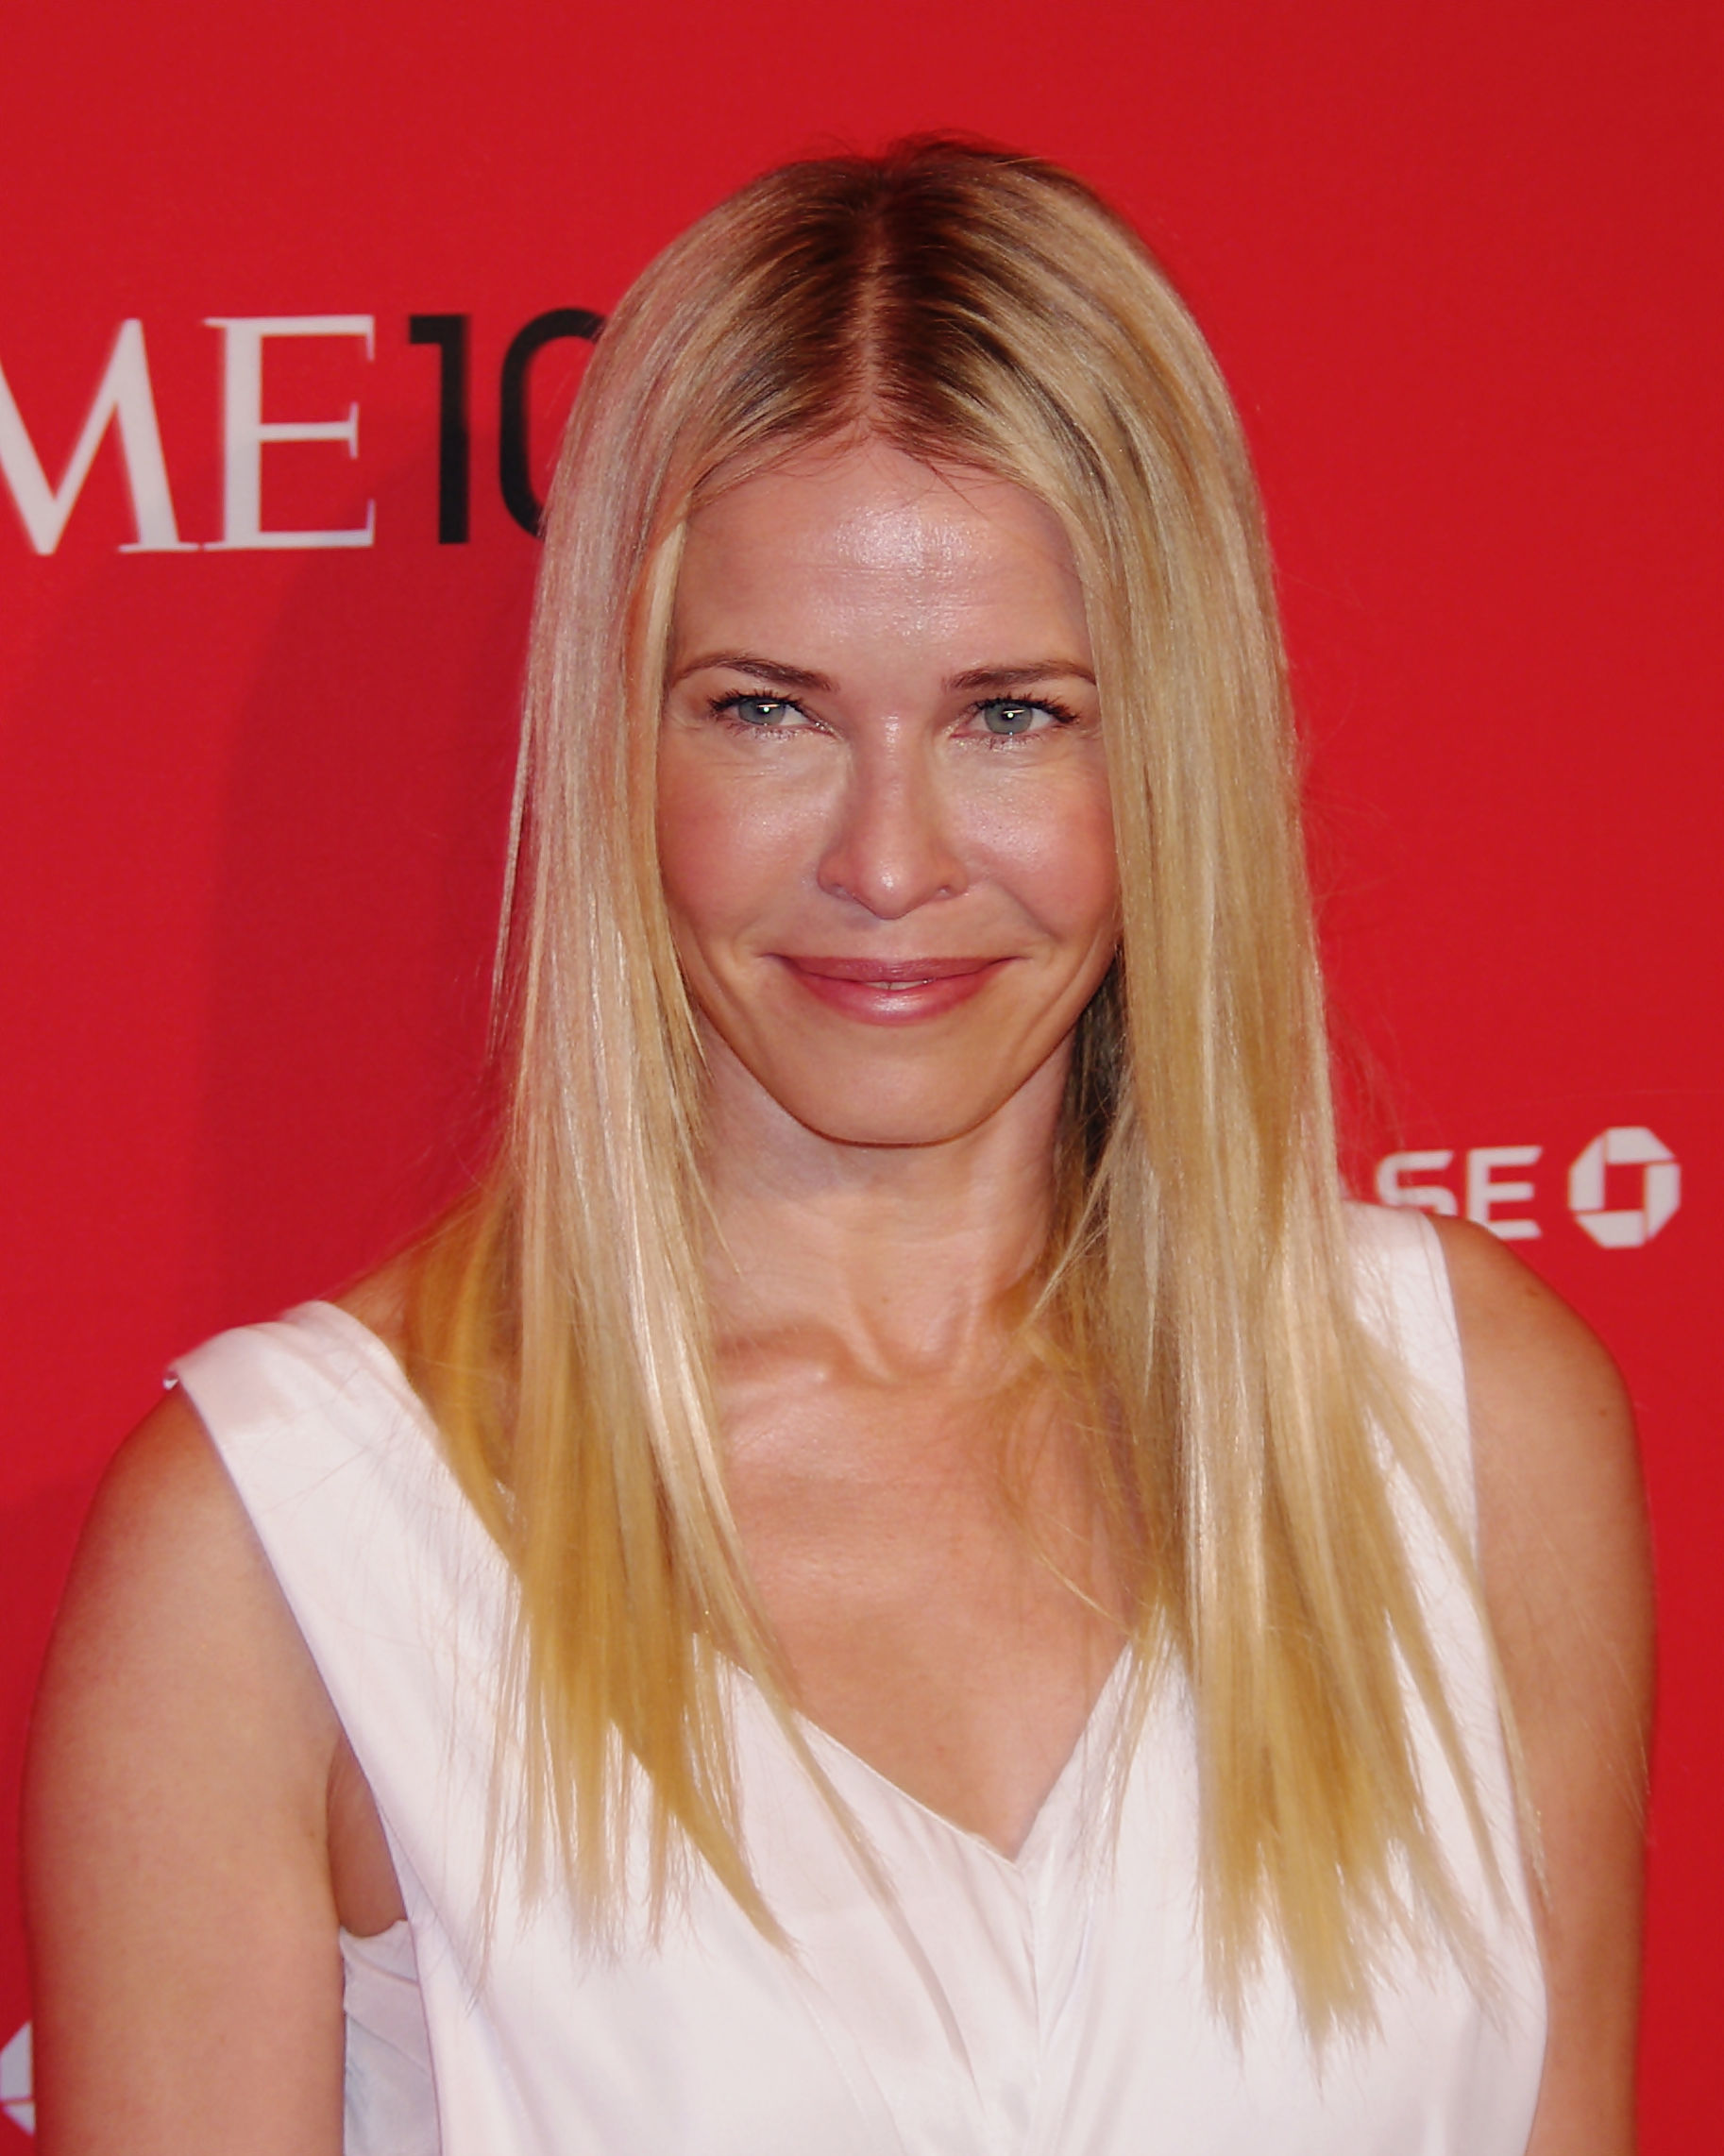 Photo of Chelsea Handler: American comedian, actress, author and talk show host